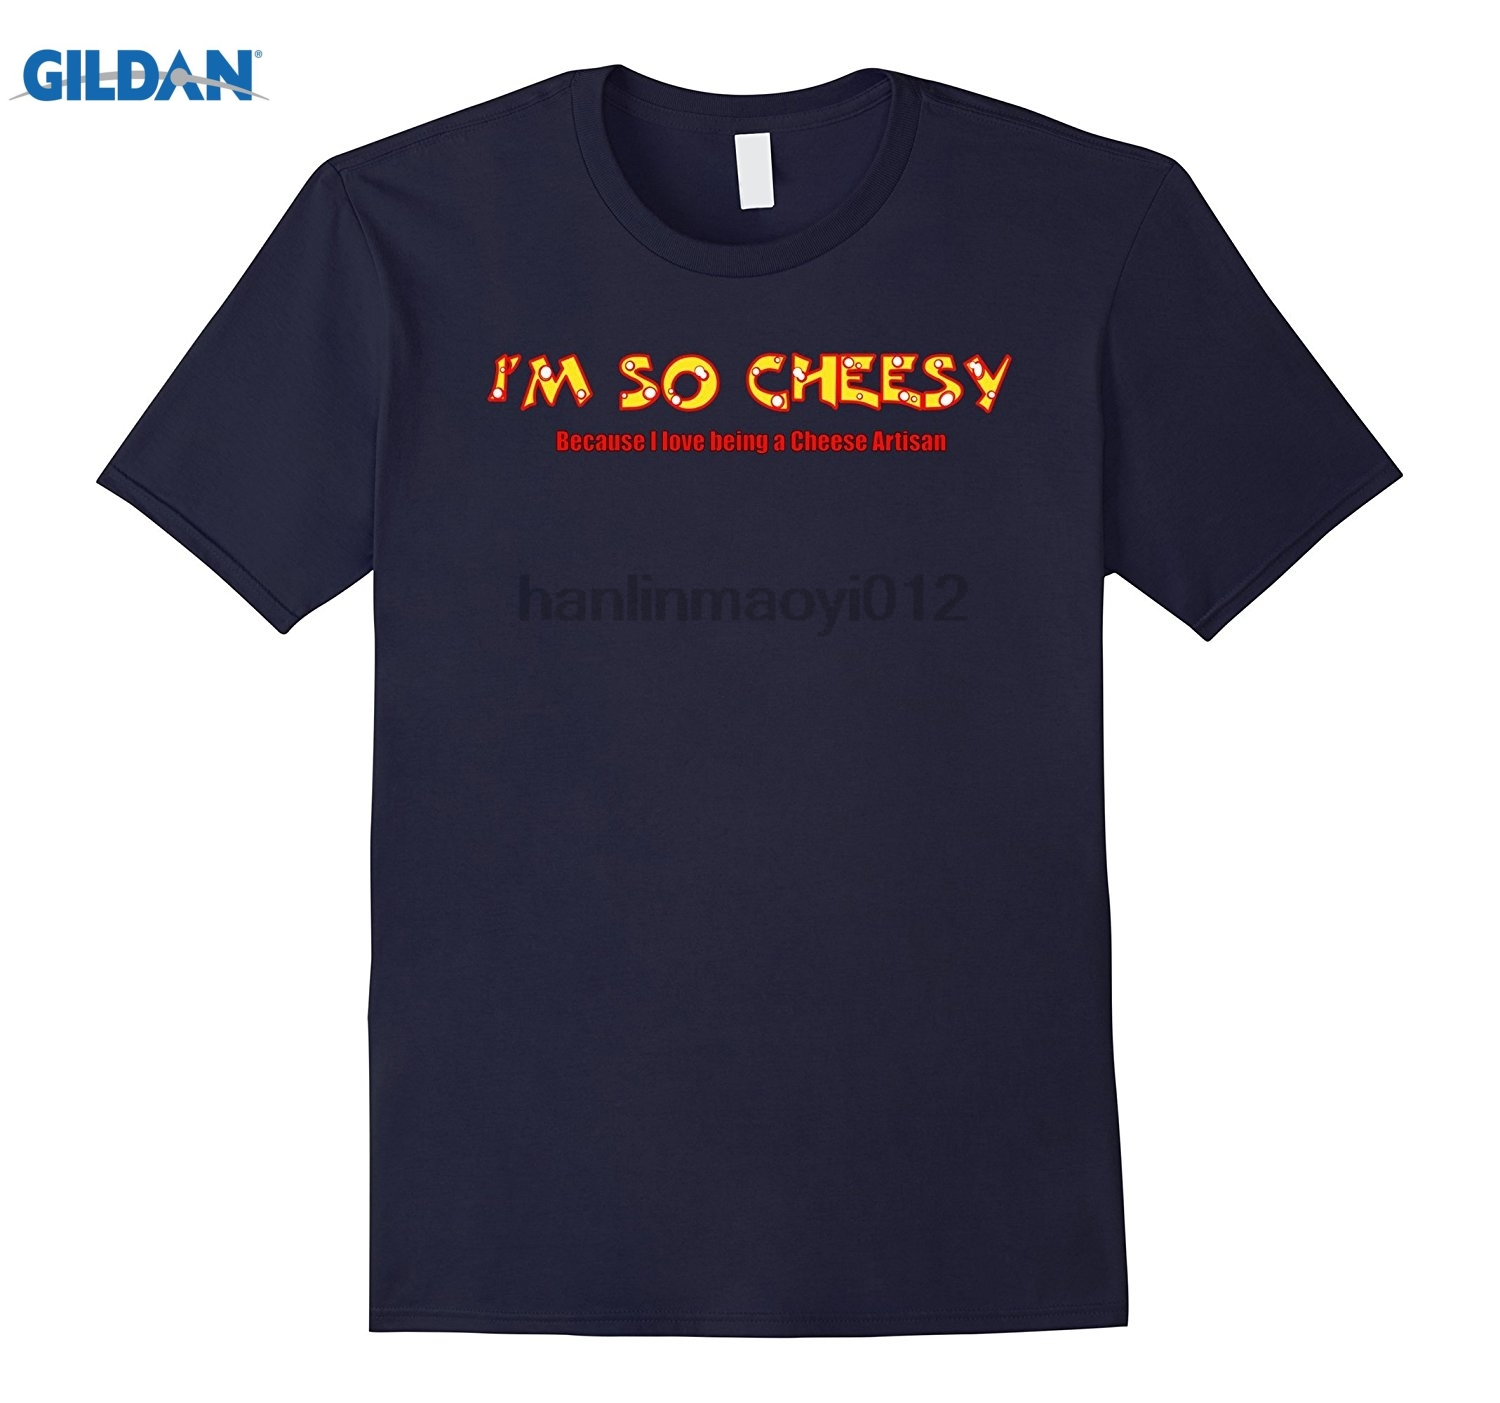 GILDAN Im So Cheesy 2018 New Hot Summer GILDAN T-shirt 100% Cotton Dress female T-shirt